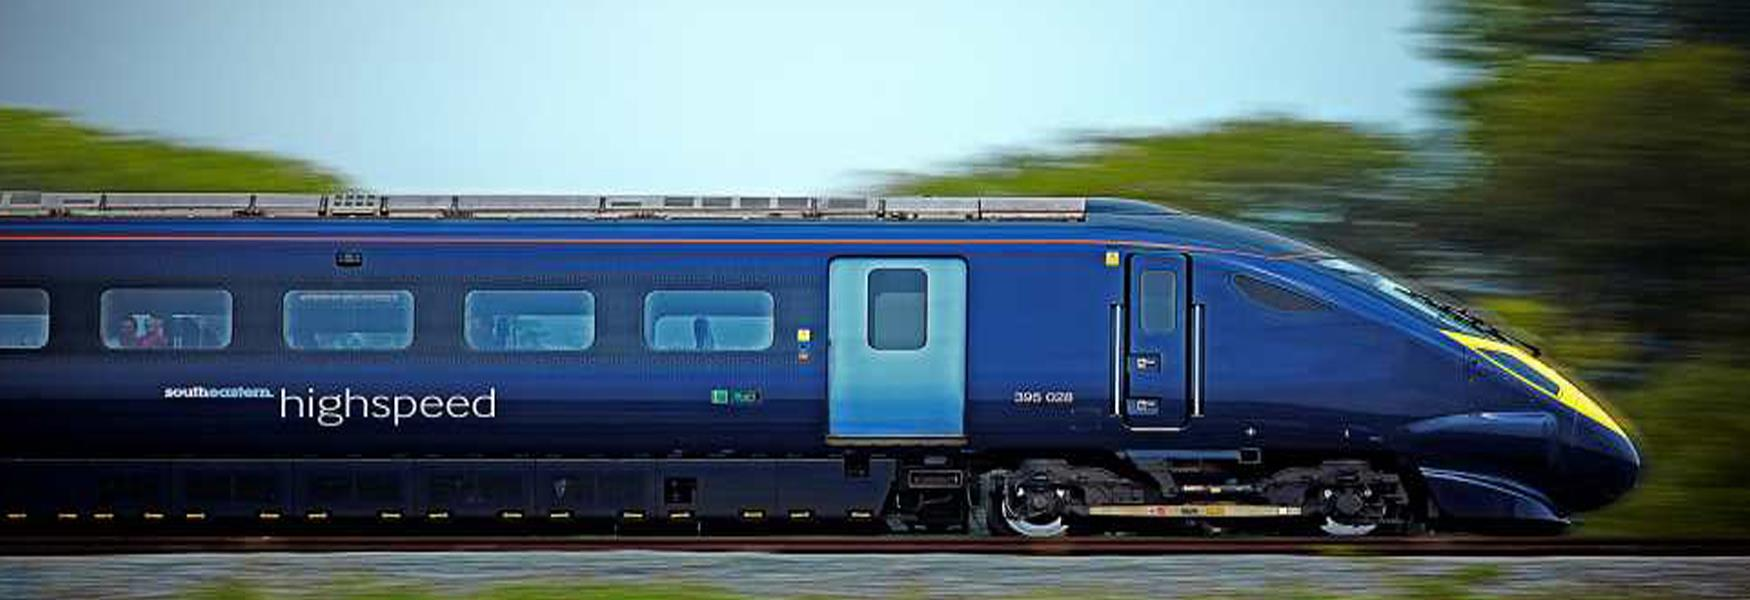 High Speed Train Strood to St Pancras